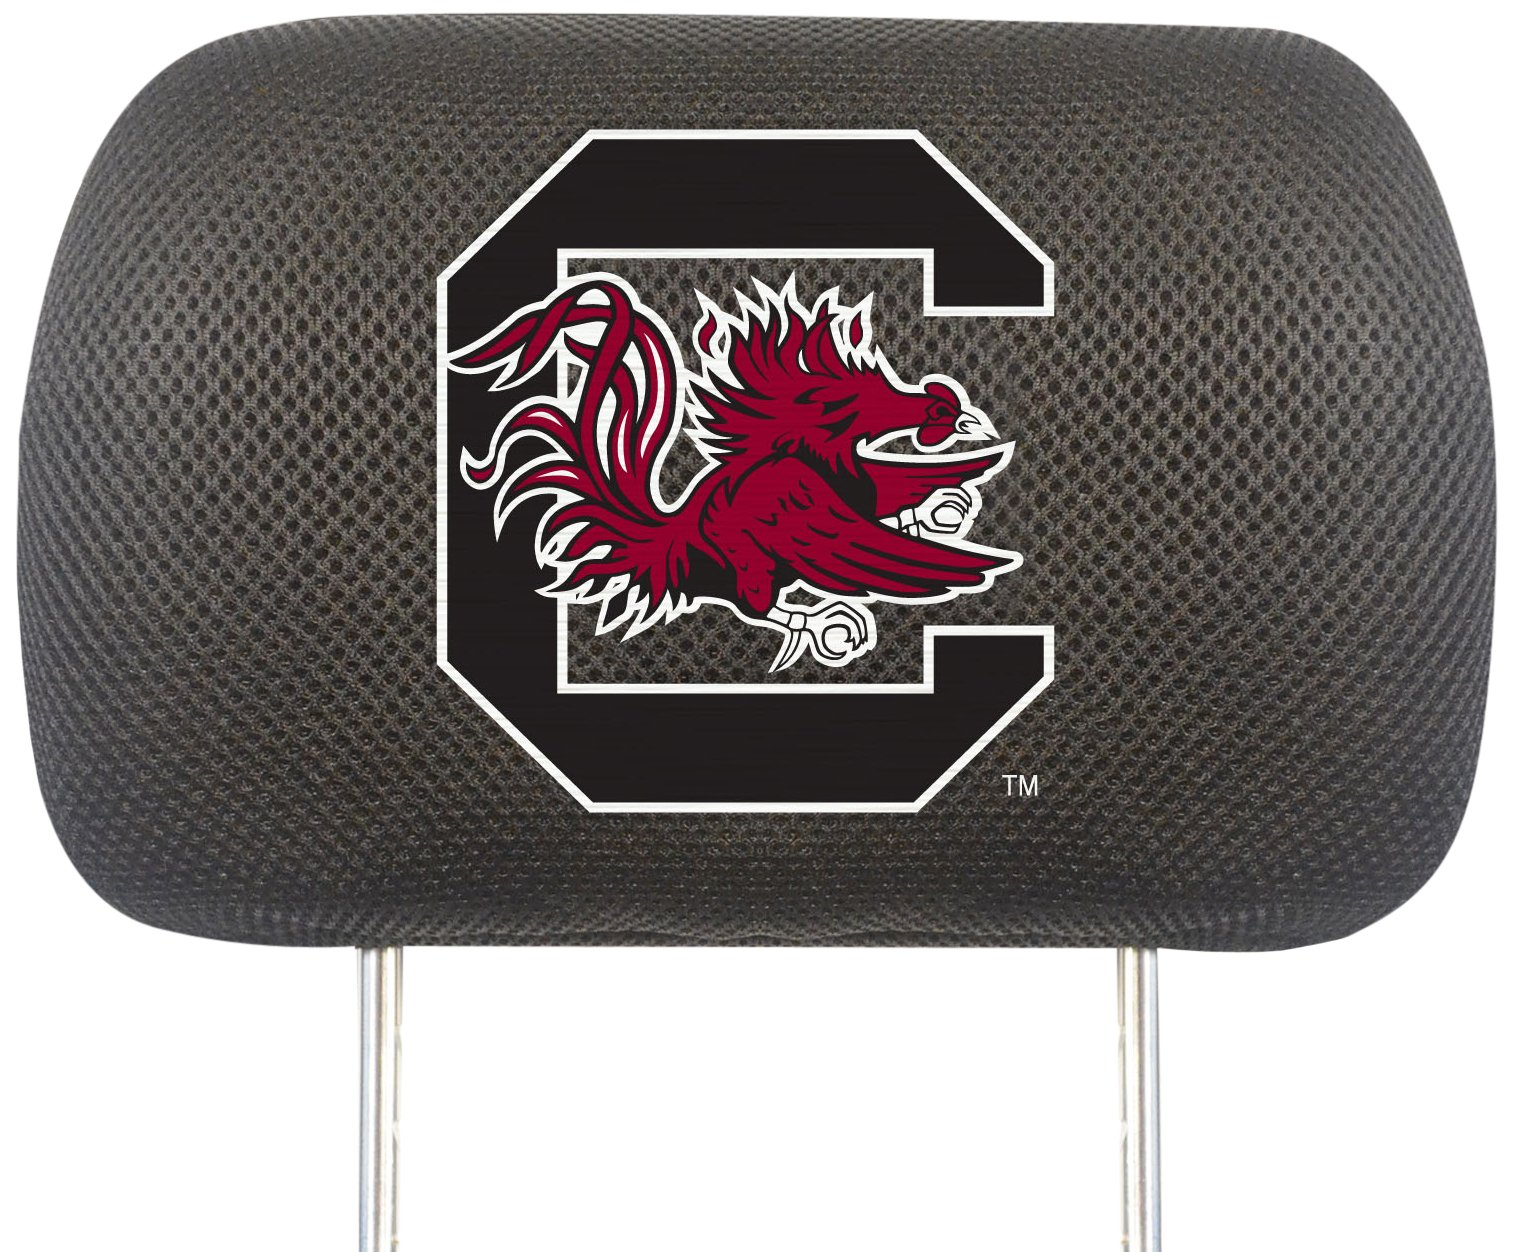 Fanmats NCAA University of South Carolina Gamecocks Polyester Head Rest Cover by Fanmats